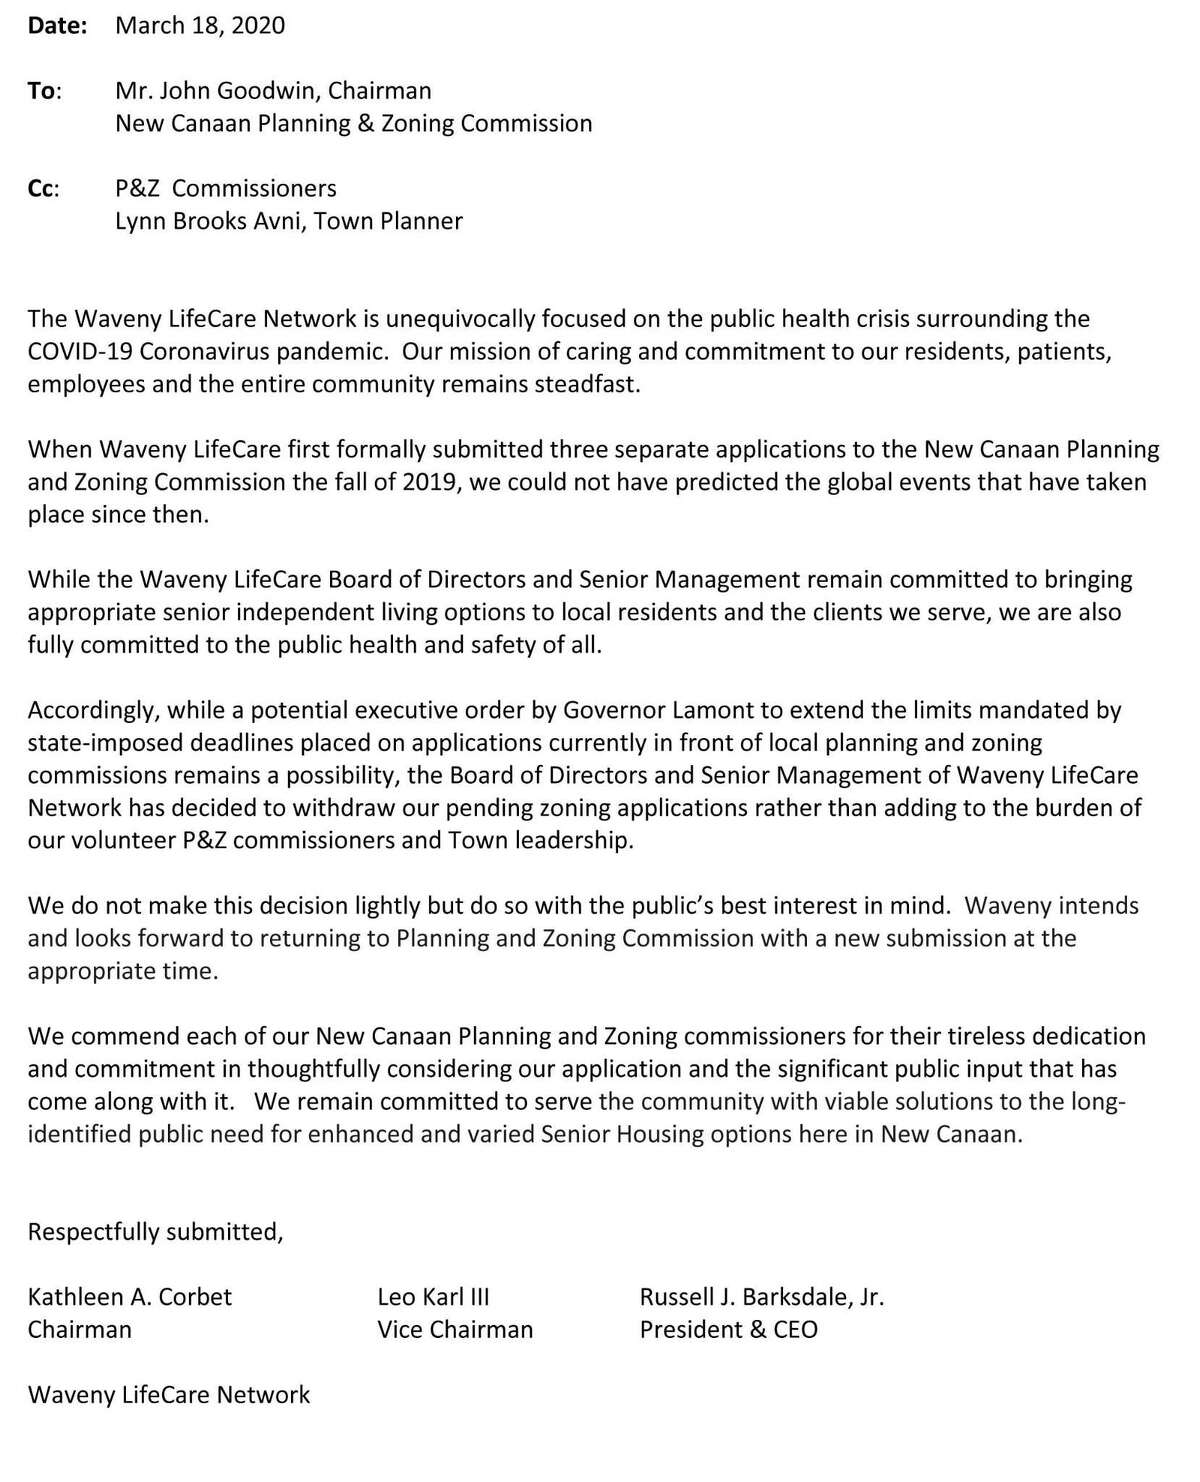 The Waveny LifeCare Network has withdrawn its application for a senior independent living center on Oenoke Ridge due to the coronavirus crisis. Attached is the letter about the news that was submitted to the New Canaan Planning and Commission Wednesday, evening, March 18, 2020, according to an email from Waveny Board of Directors Chairman Kathleen Corbet.